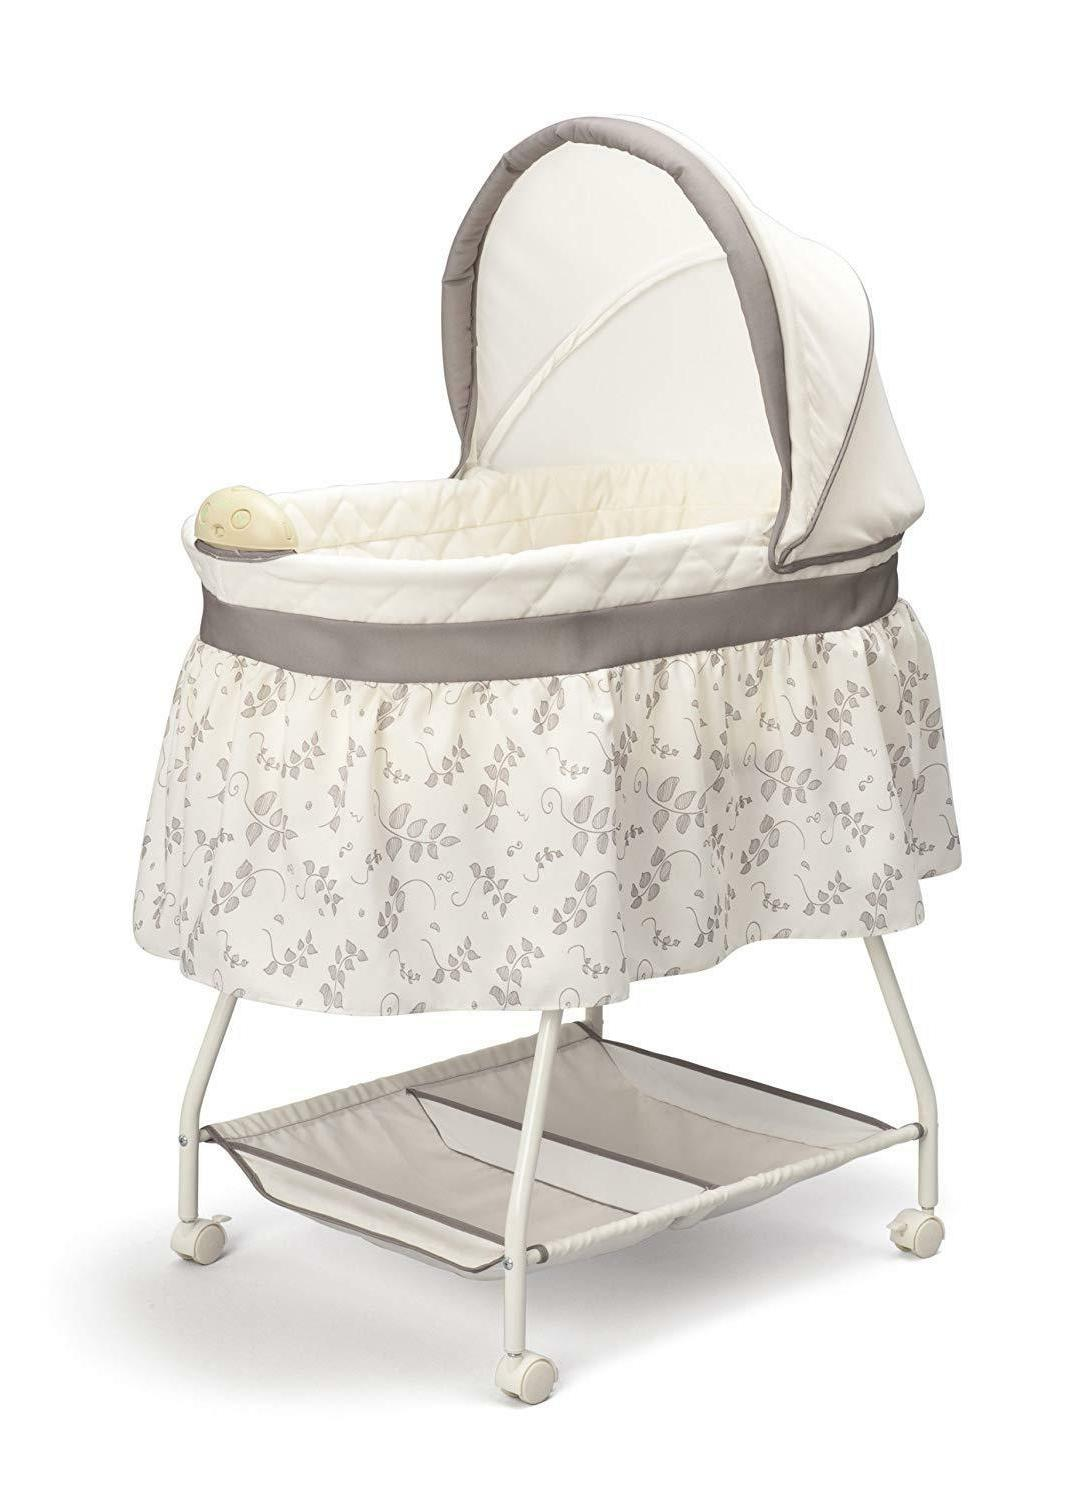 Delta Children Sweet Beginnings Bassinet, Baby Sleeping Bed,